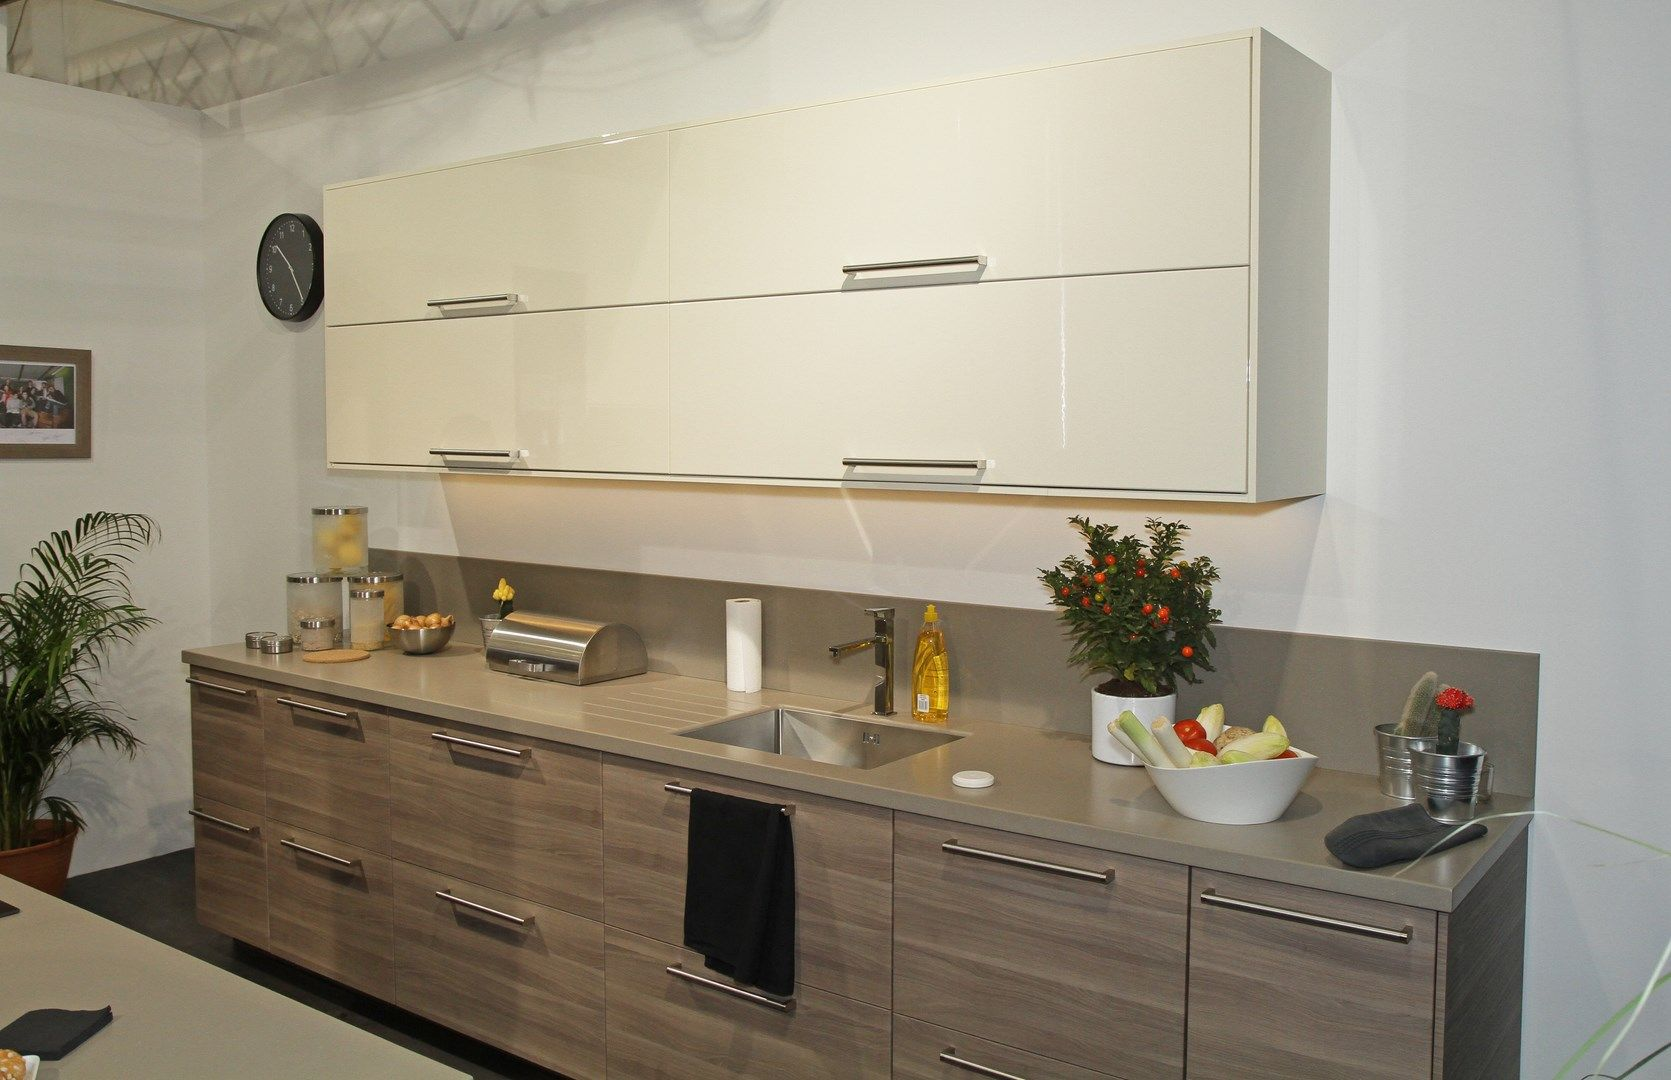 Single wall kitchen ikea brokhult google search for Google ikea cuisine